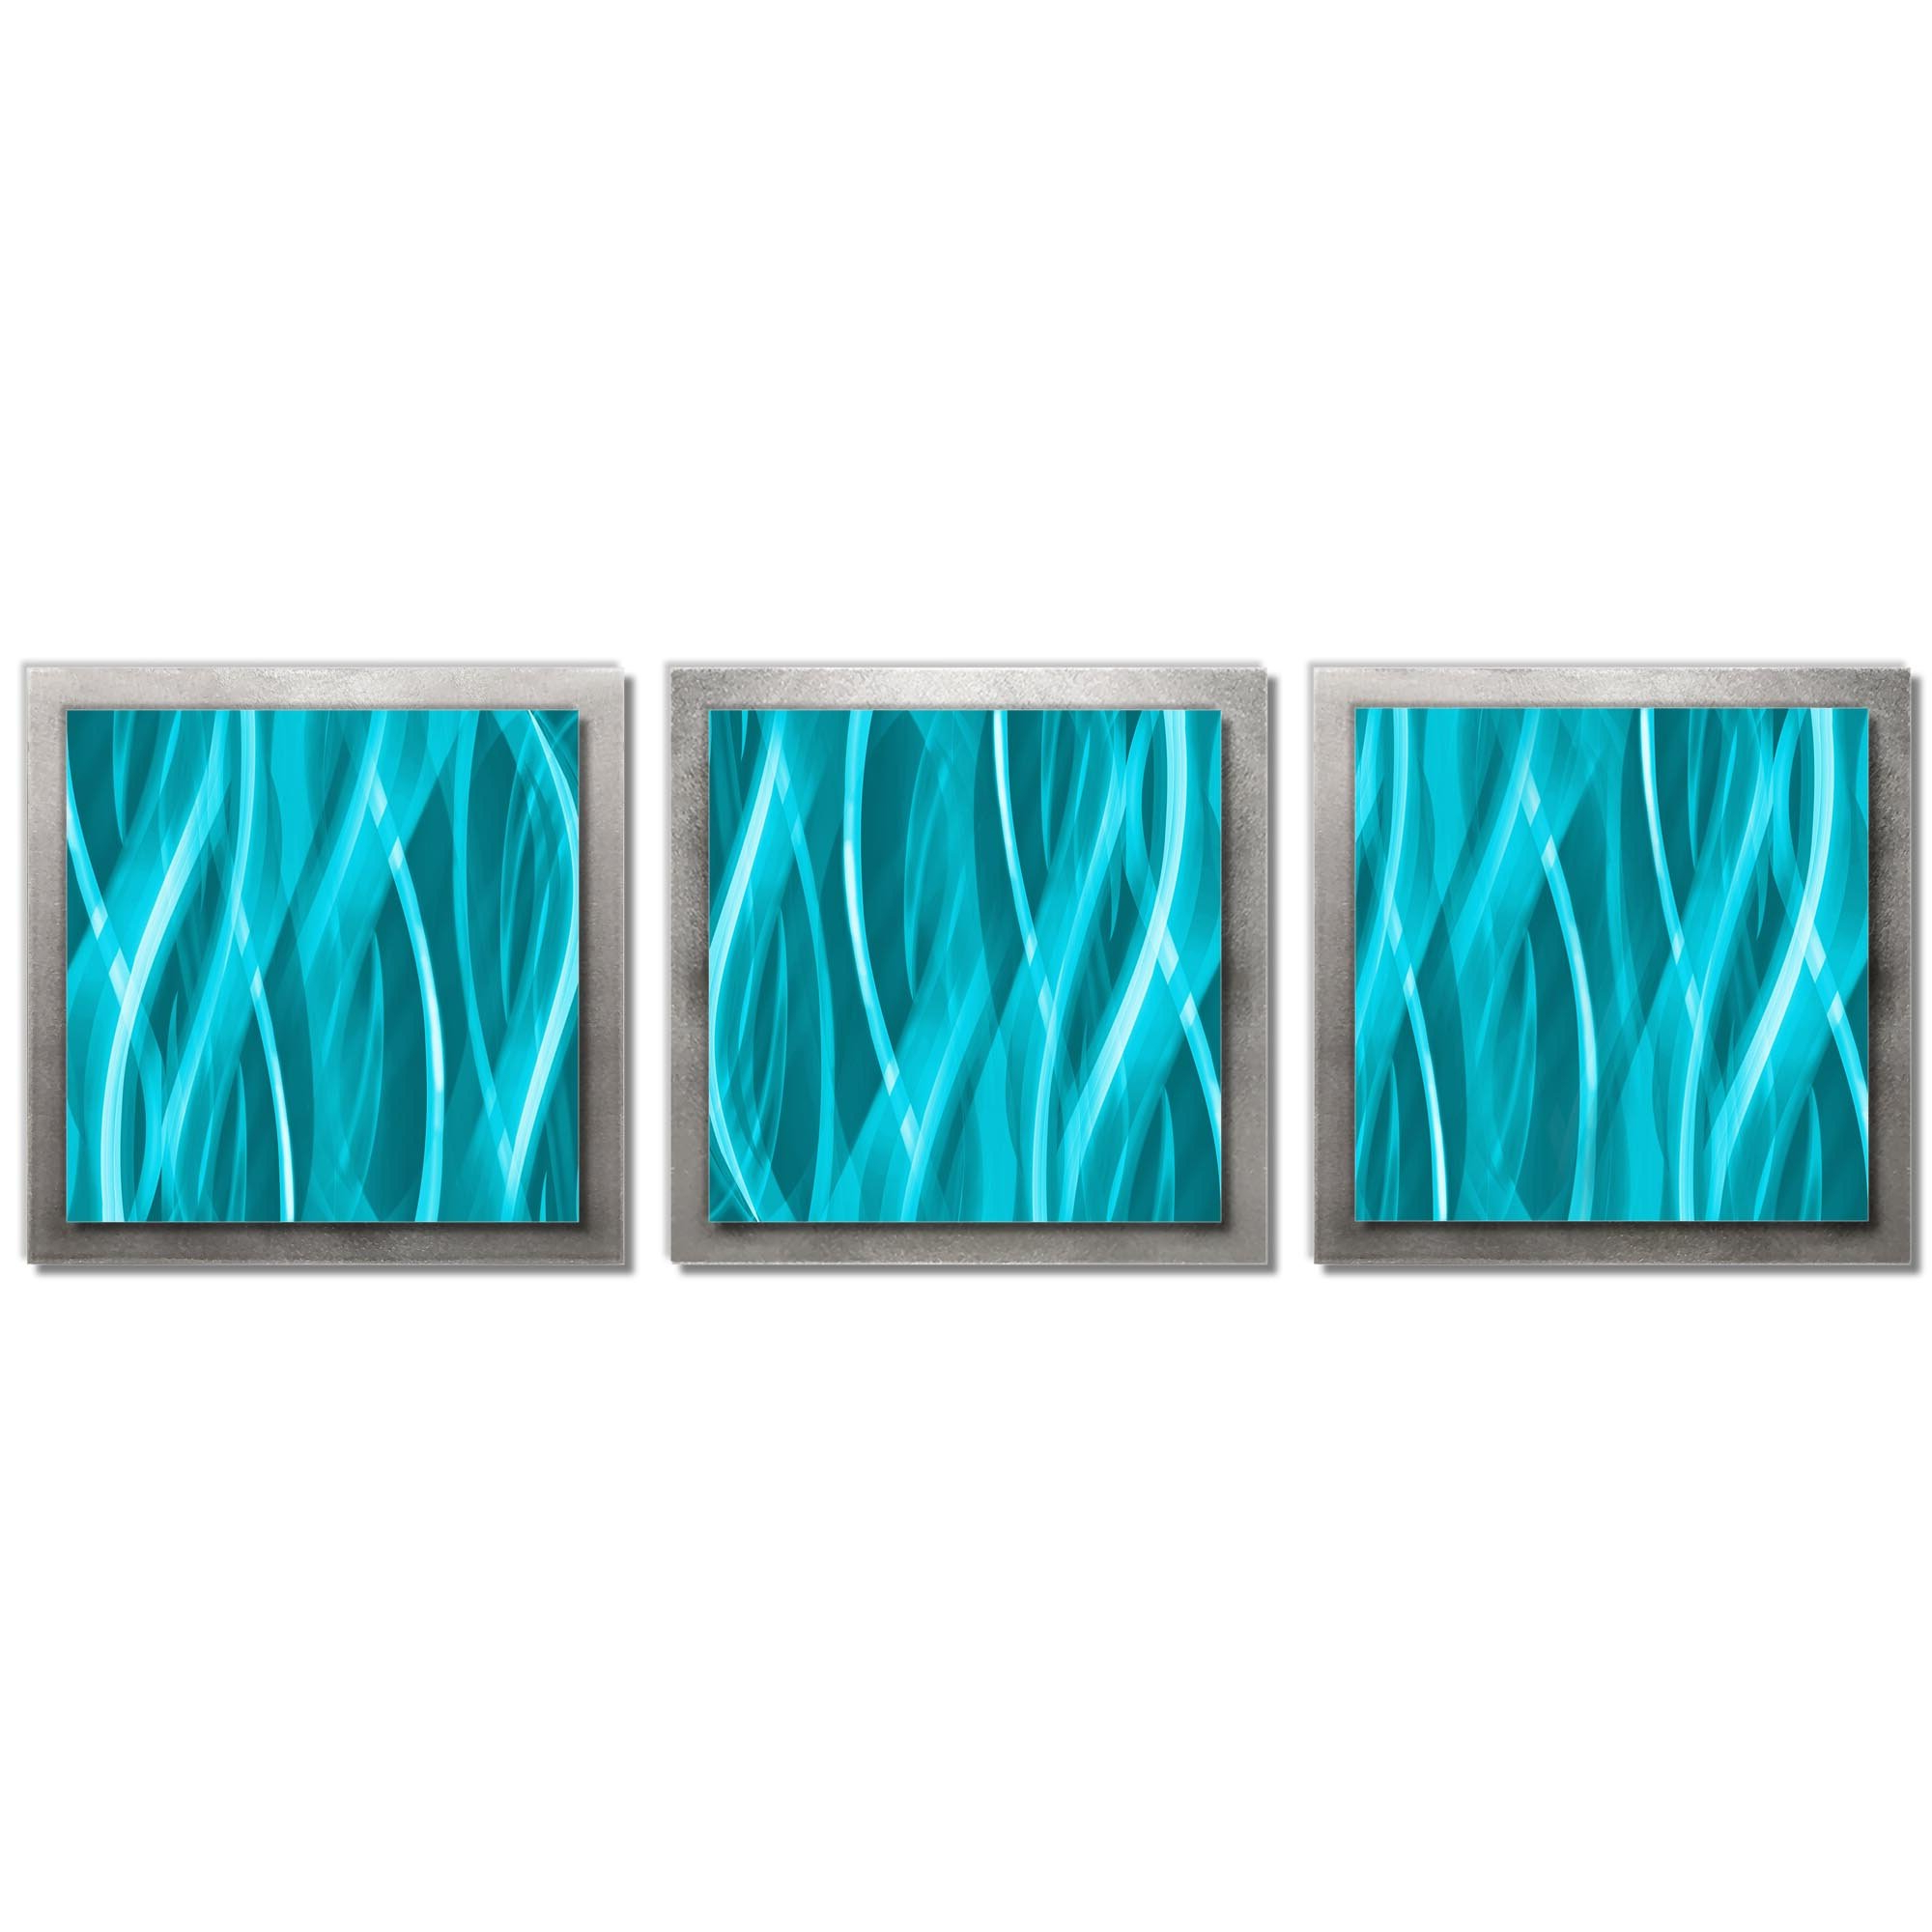 2020 Strategy Rectangle Wall Décor By Orren Ellis Throughout 3 Piece Modern Essence Wall Décor Set (View 9 of 20)